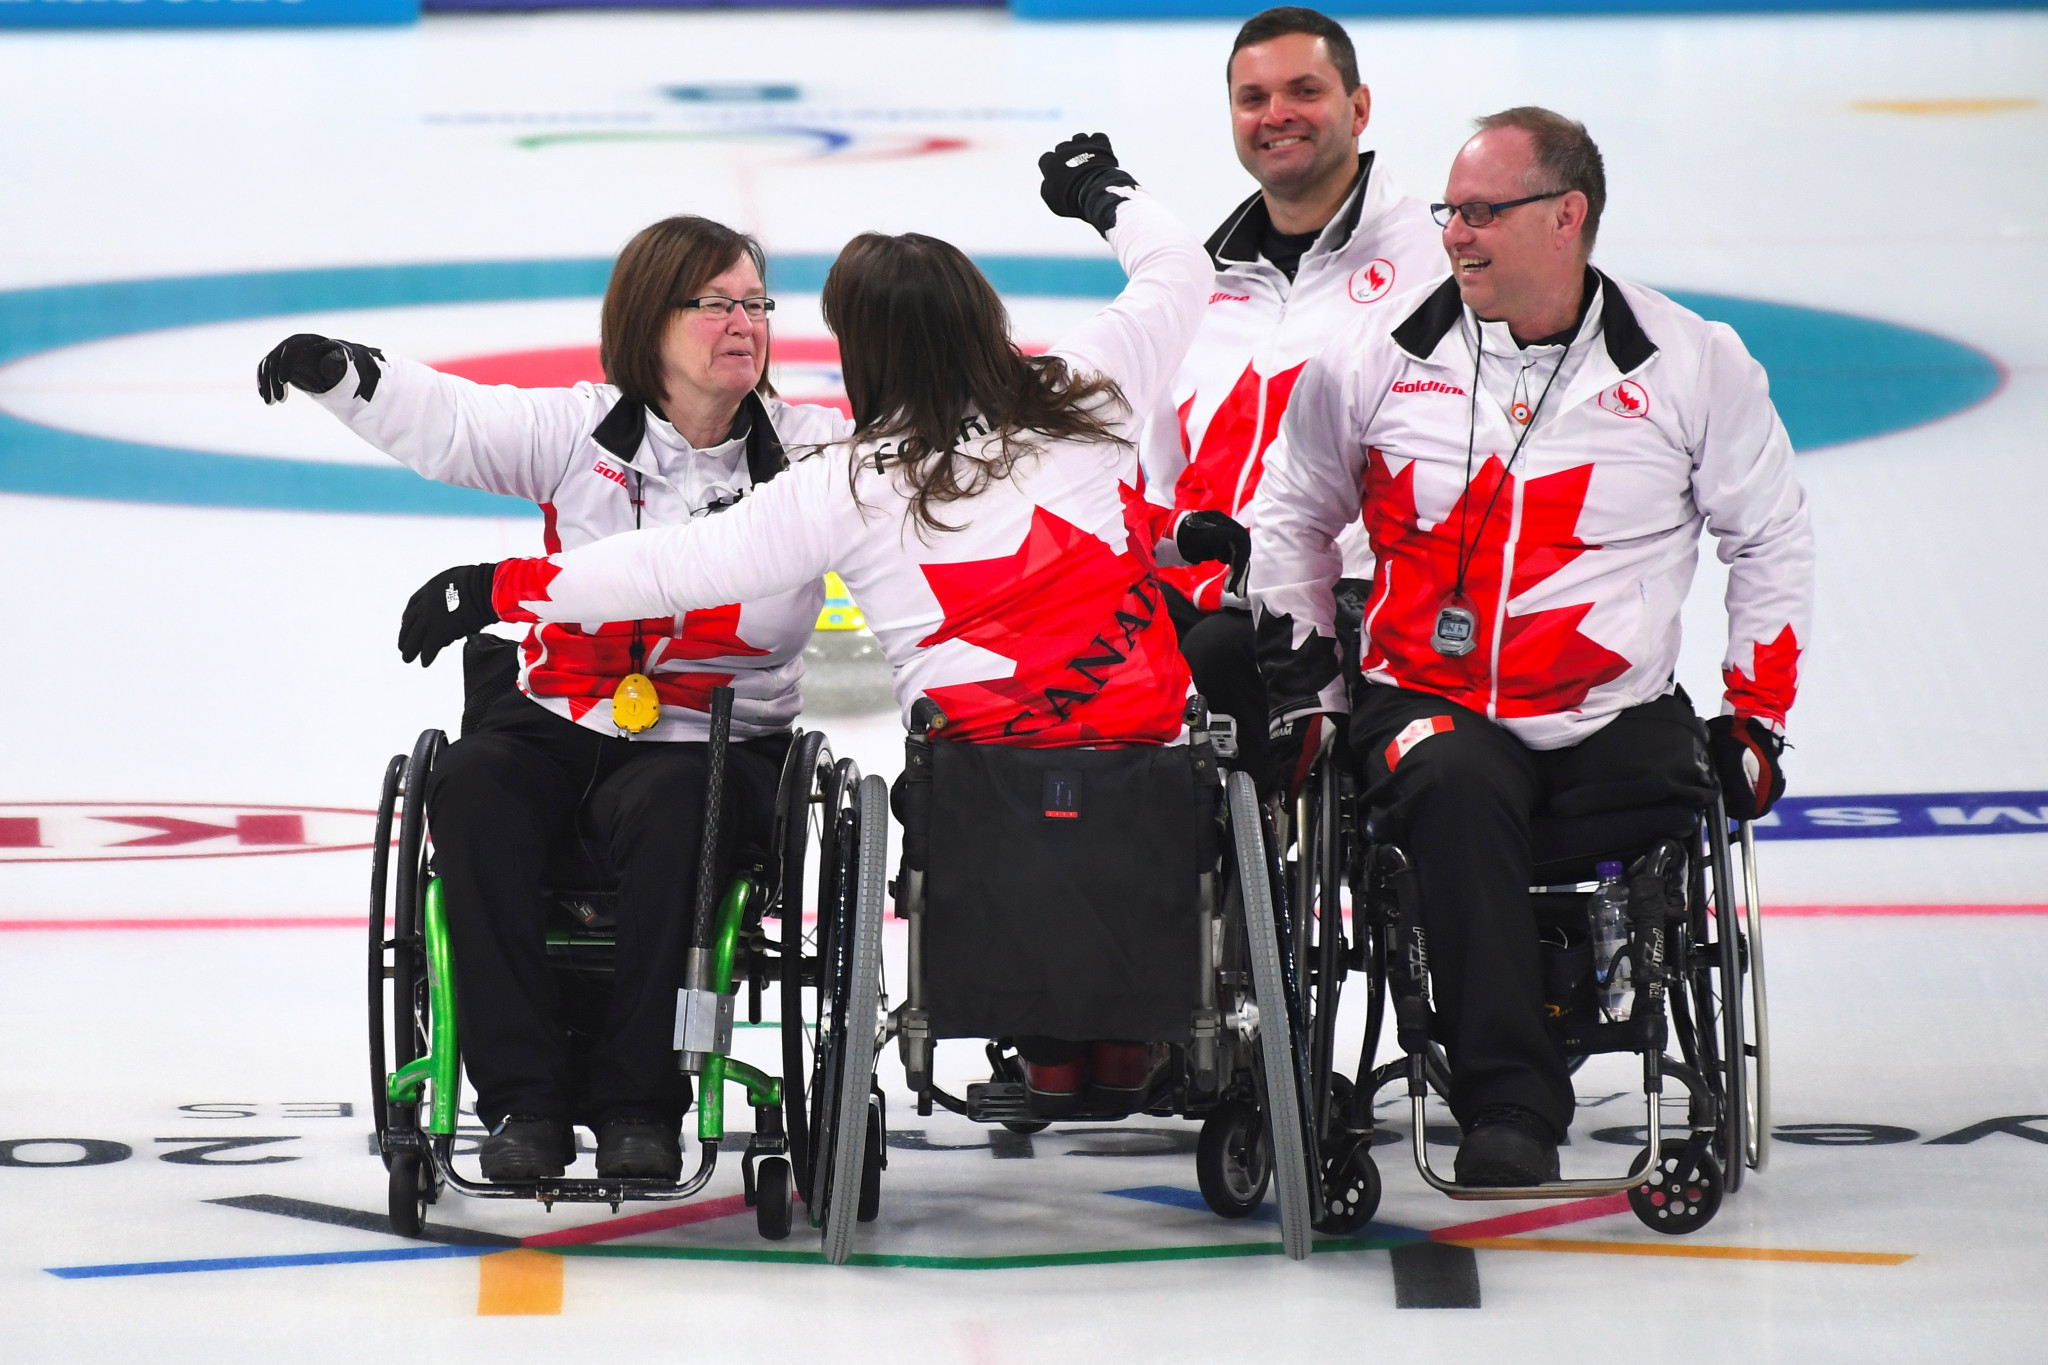 Canada's wheelchair curling team have won a medal at every Paralympic Games competition since the sport's introduction at Turin 2006 ©Getty Images